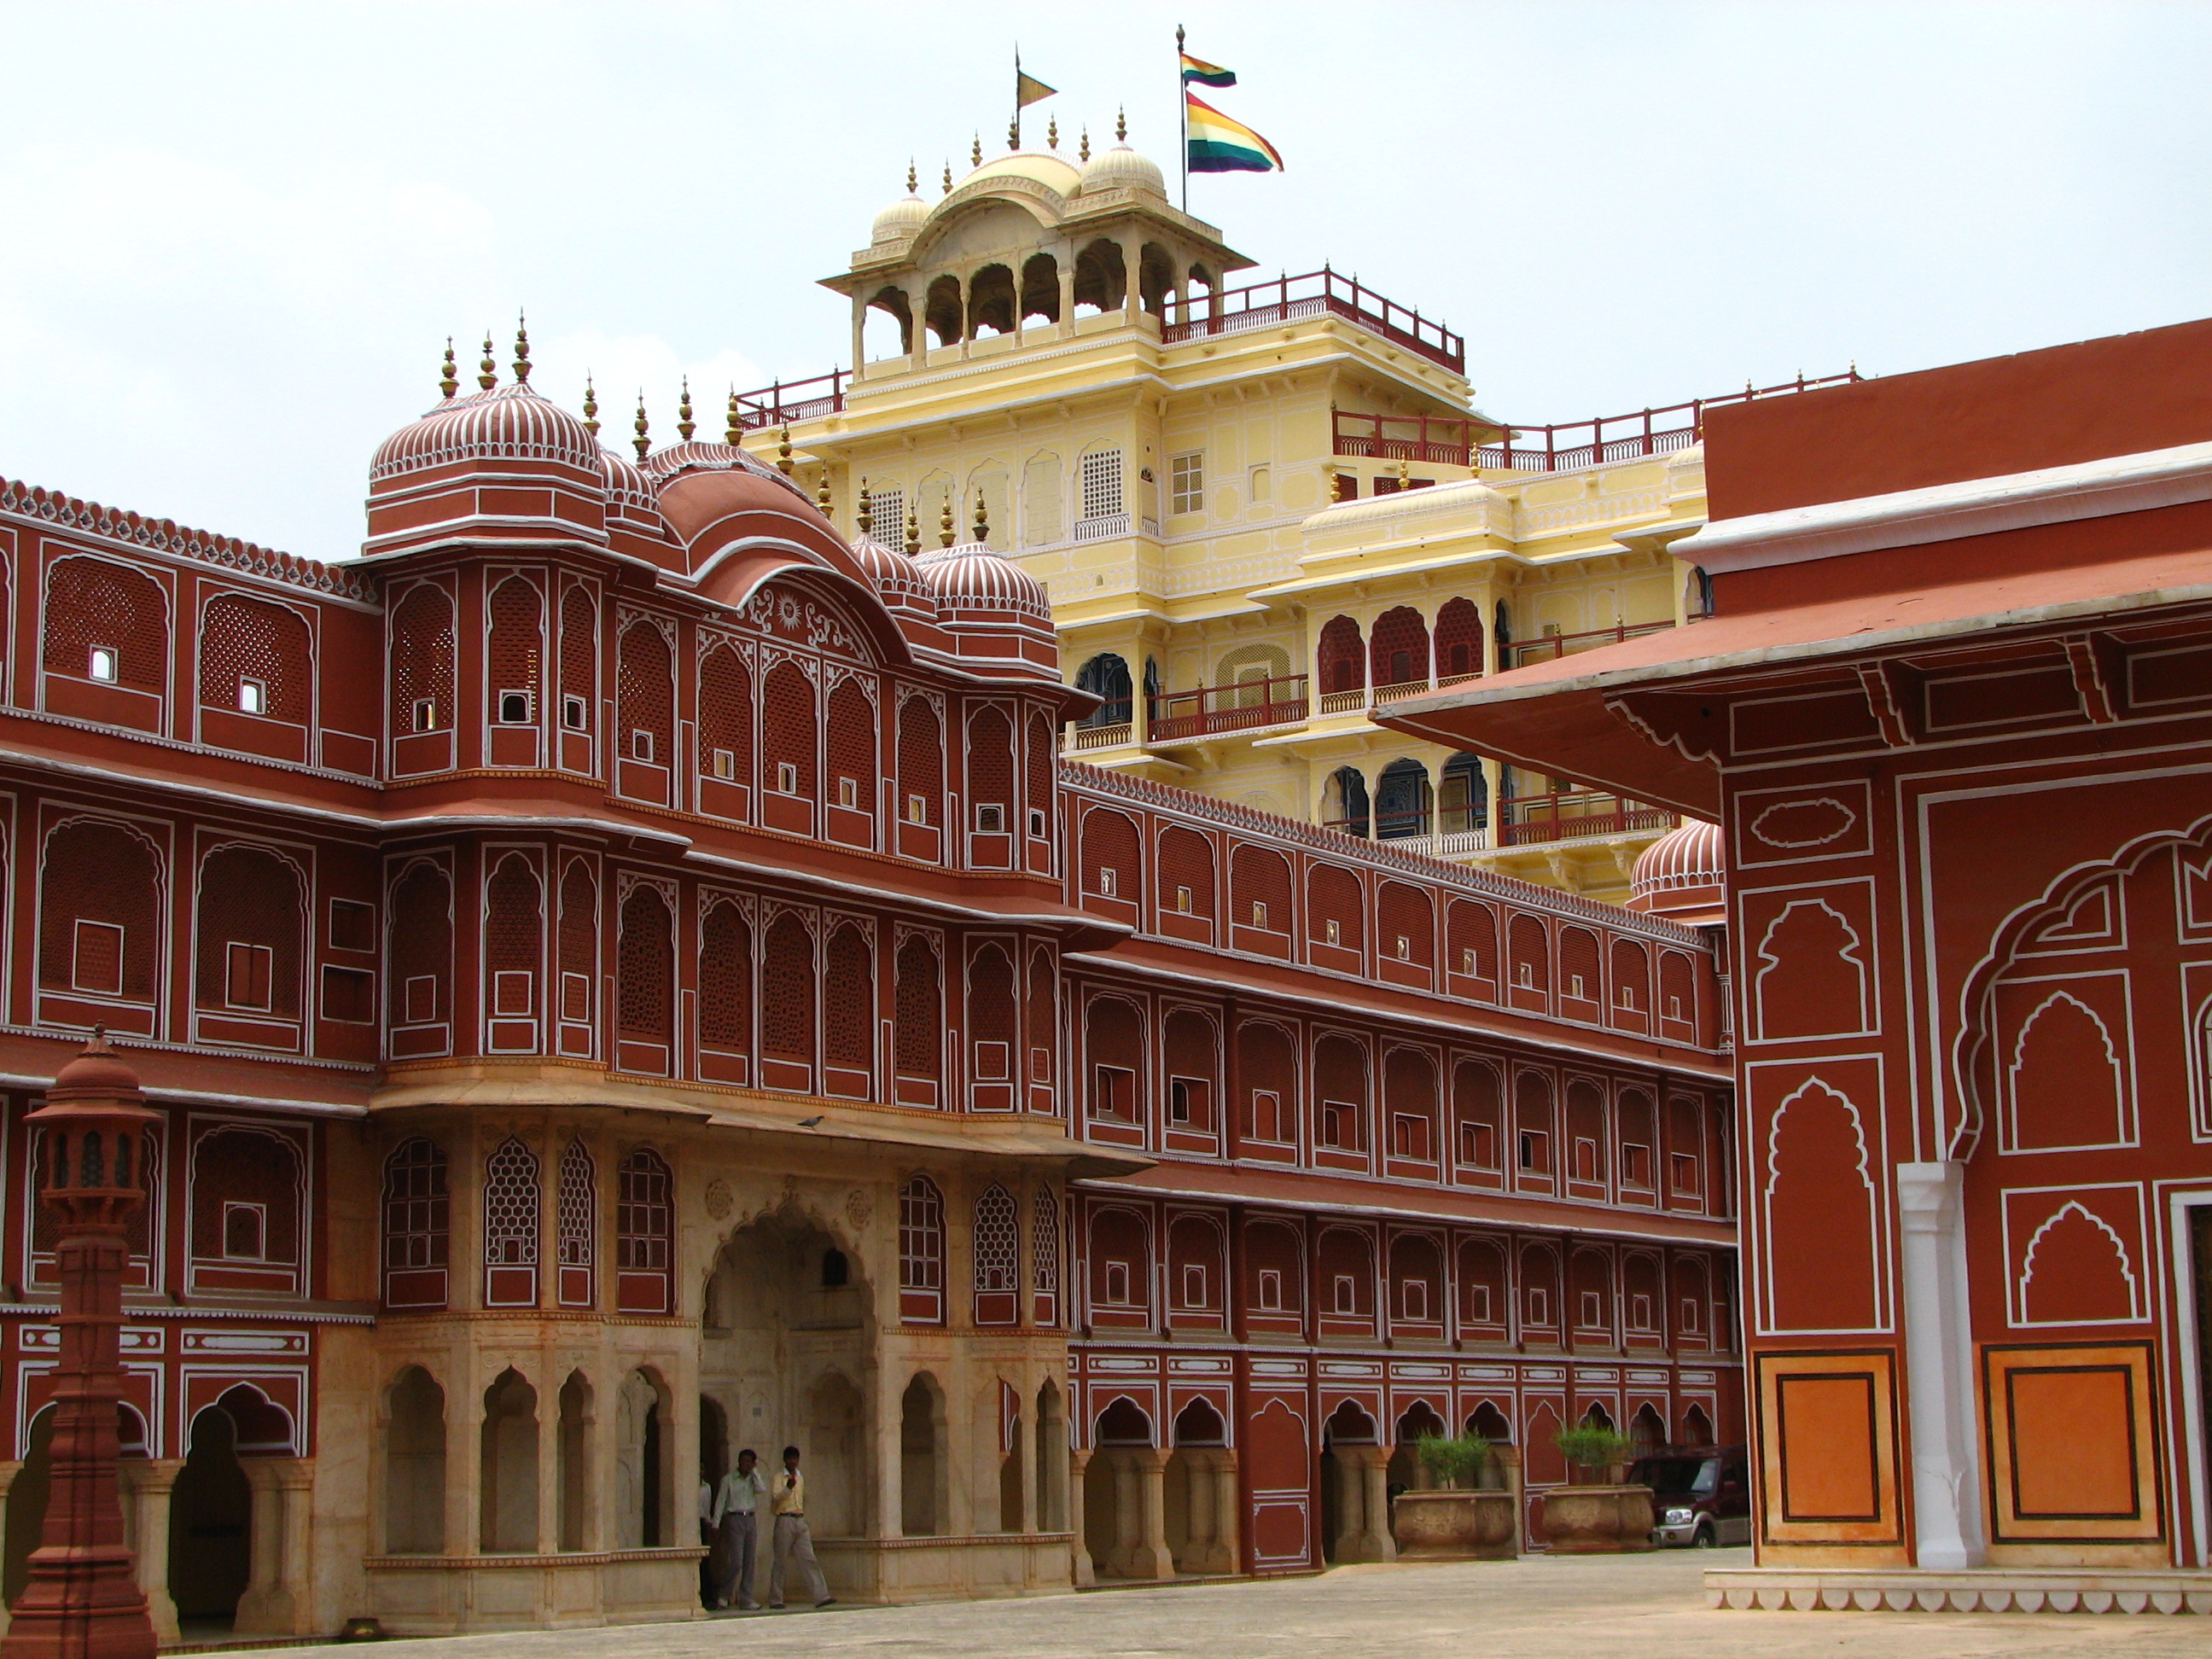 dating places in jaipur Explore information about some of the best places and attractions to see in jaipur, rajasthan 20 top places to visit in jaipur dating back to the 19 th.